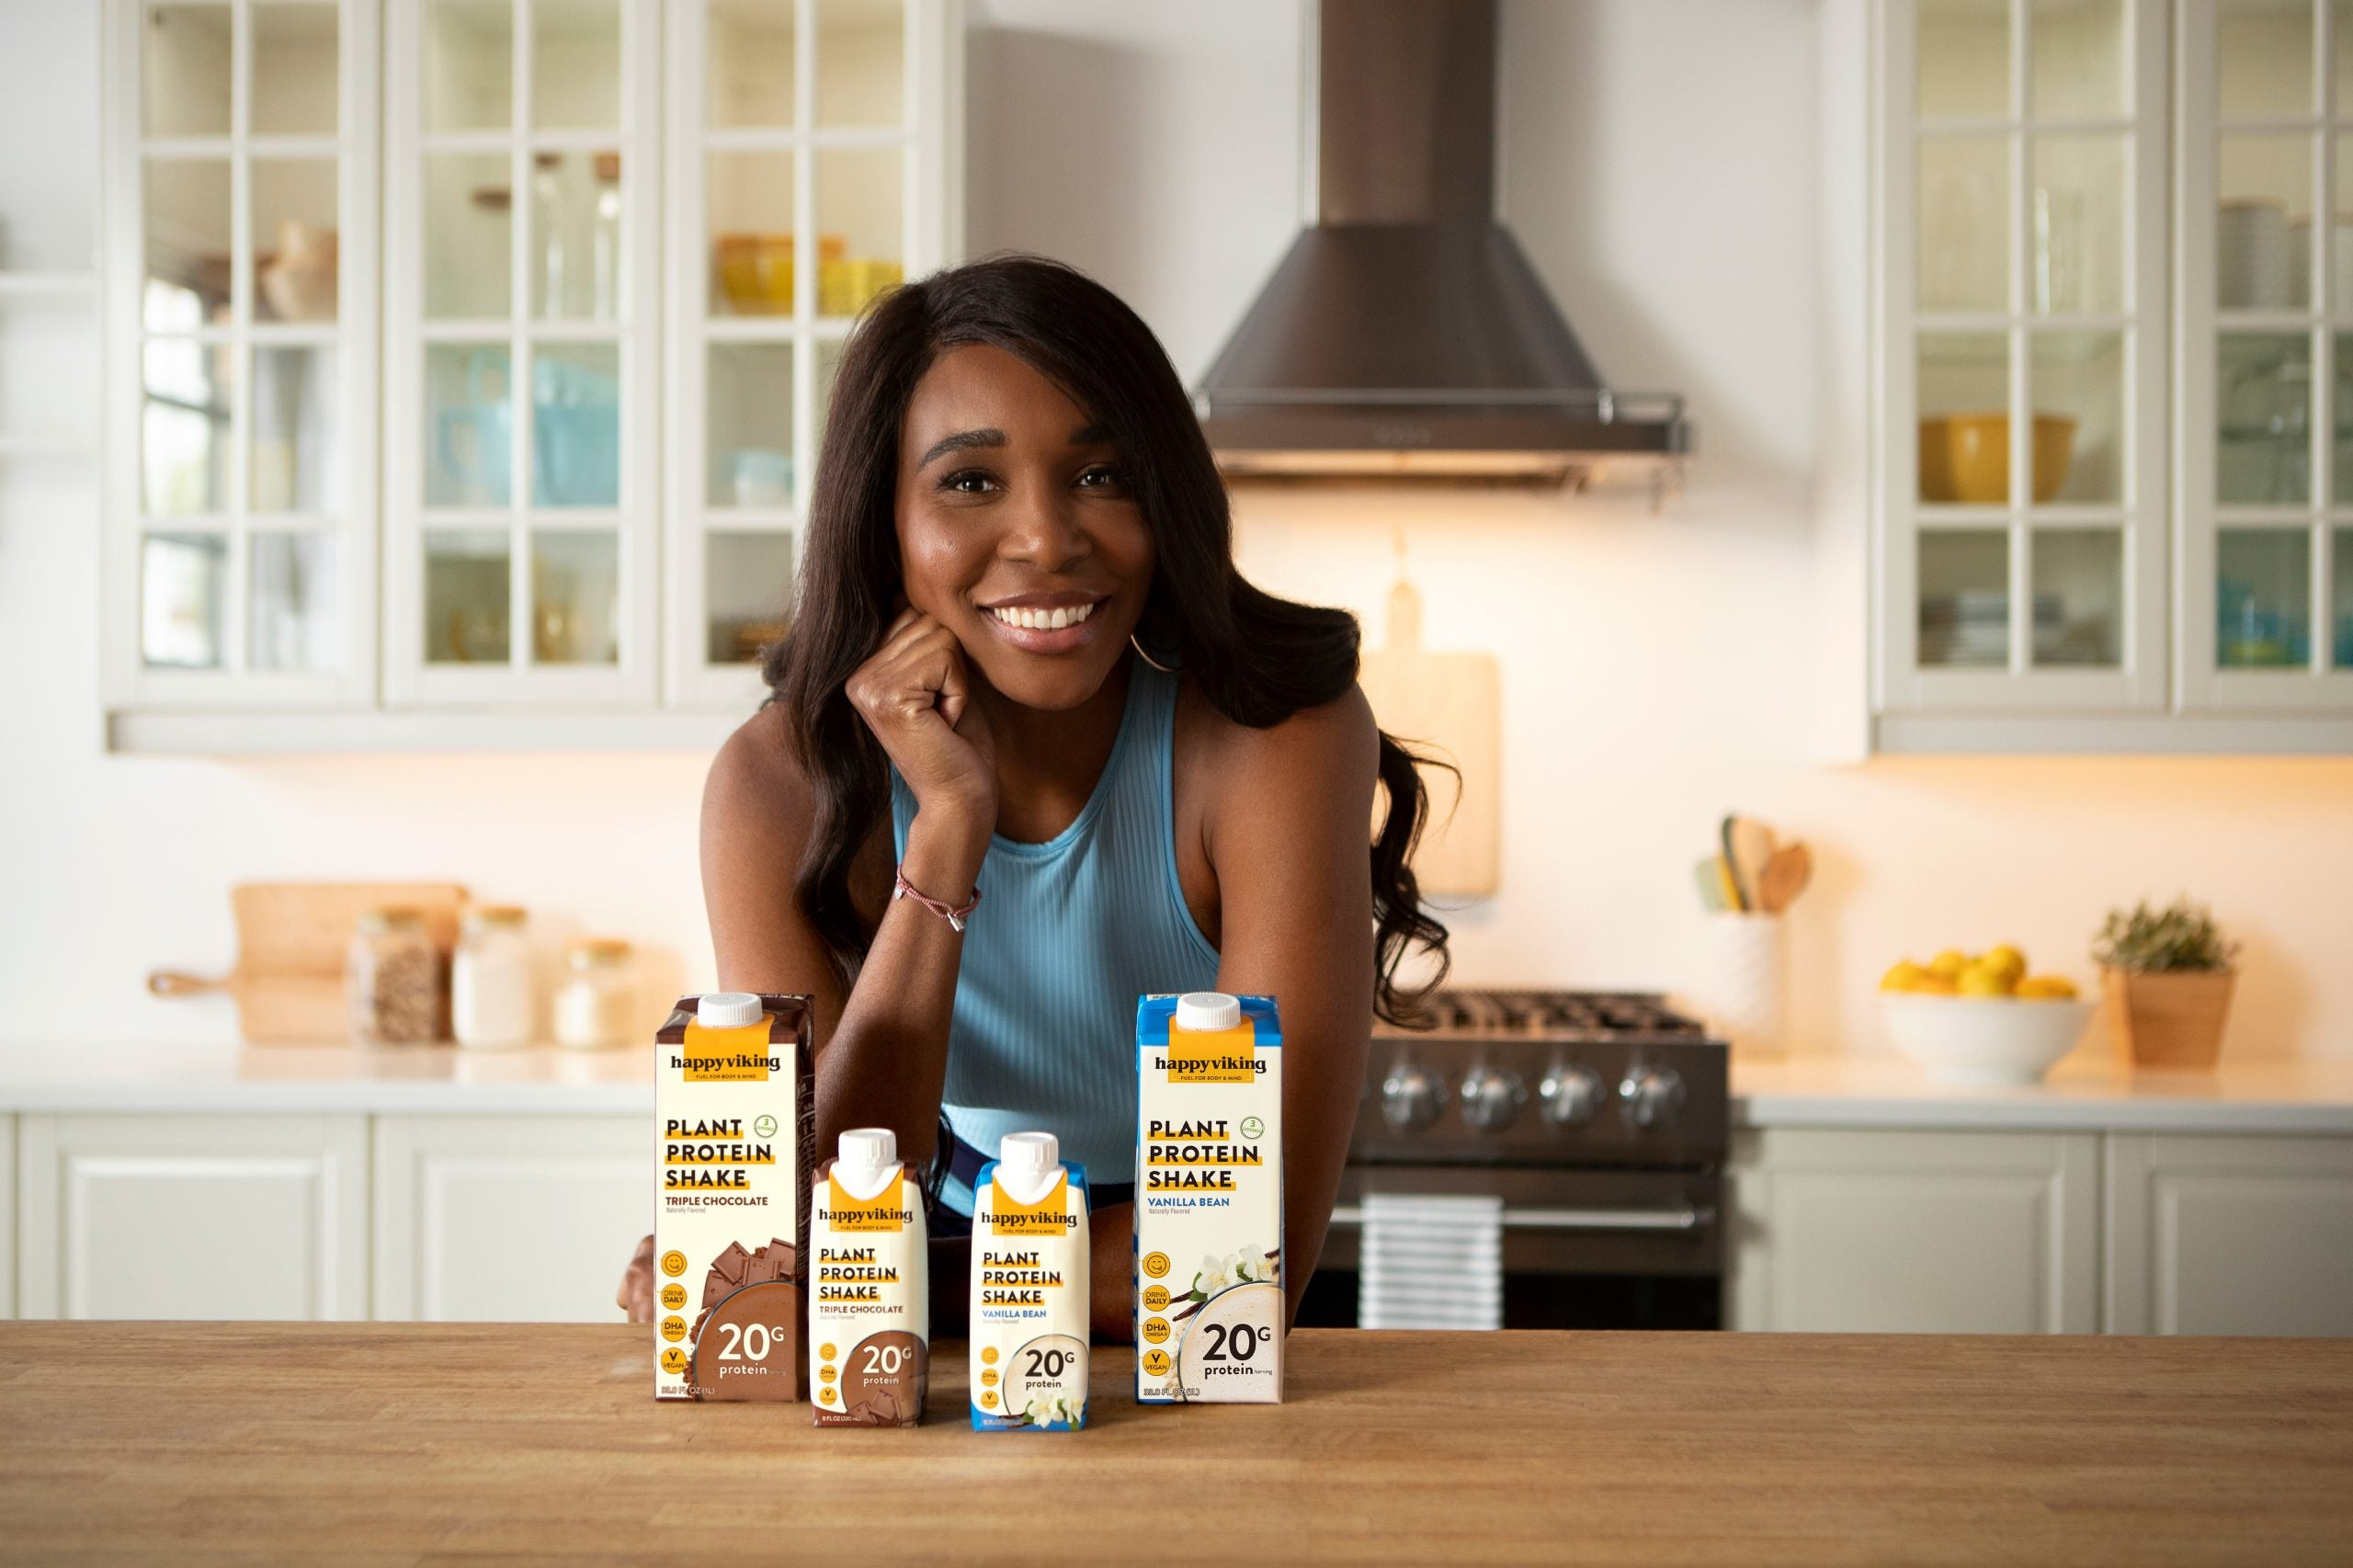 Venus Williams Launches New Vegan Protein Shakes, Shares Her Favorite Benefits of Plant-Based Living